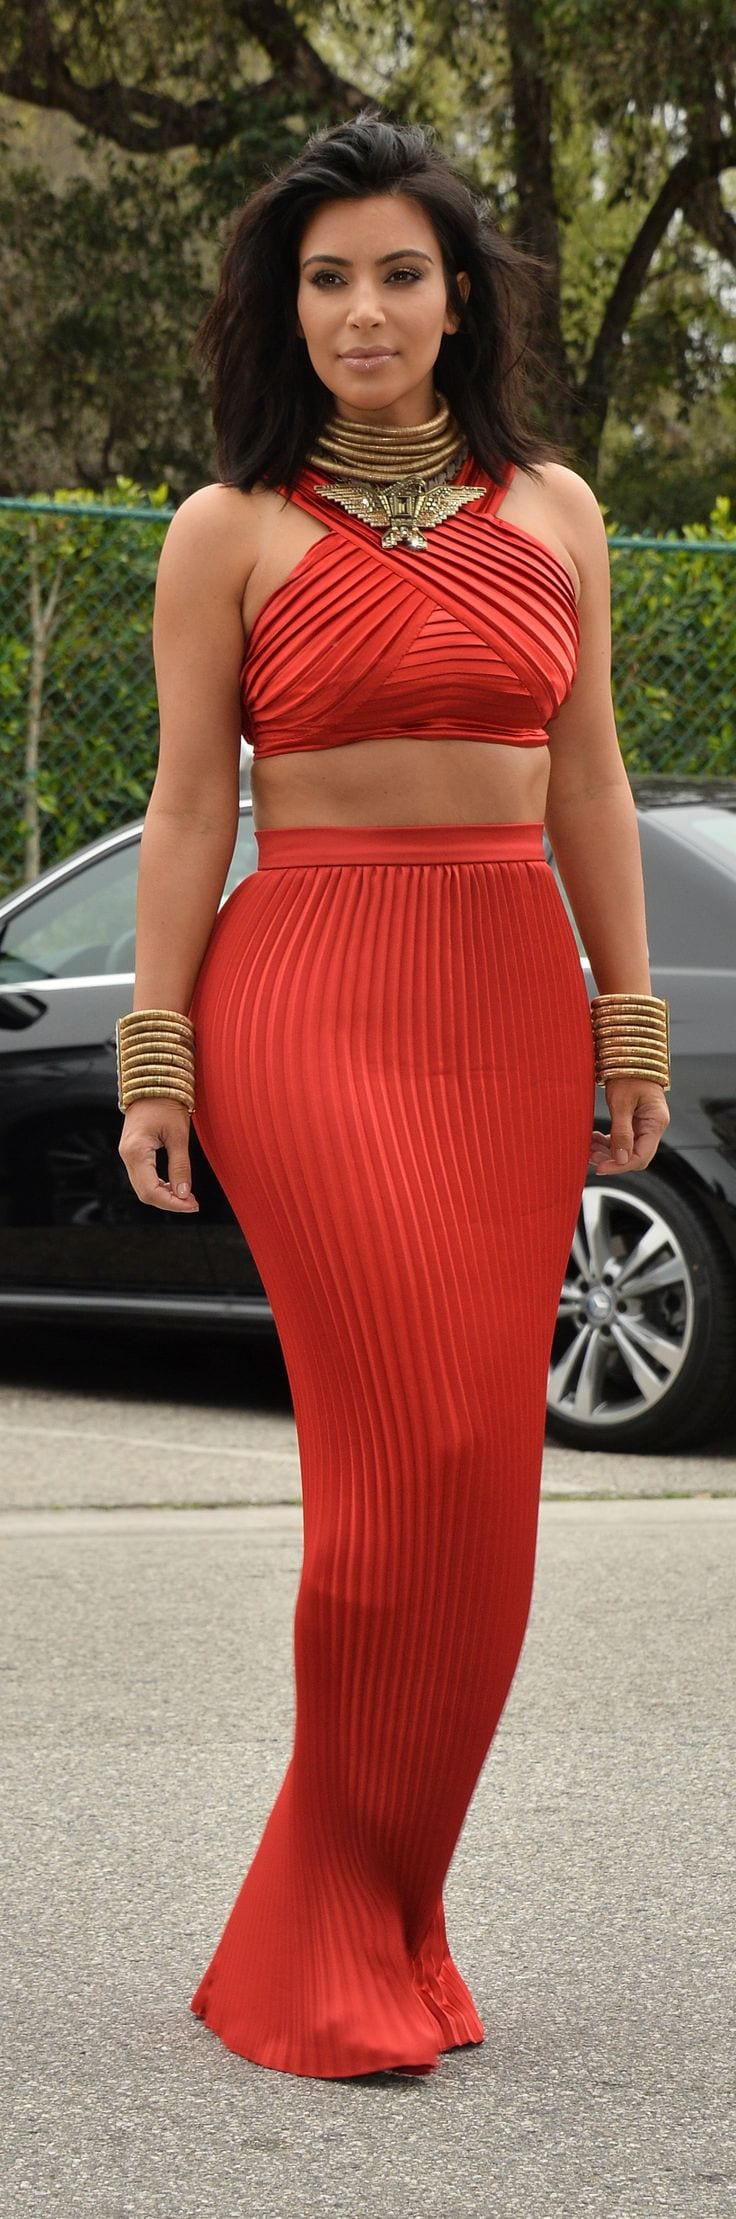 Kim-Kardashian-wearing-a-Balmain-ensemble 30 Most Stylish Kim kardashian's Outfits Rocking Social Media